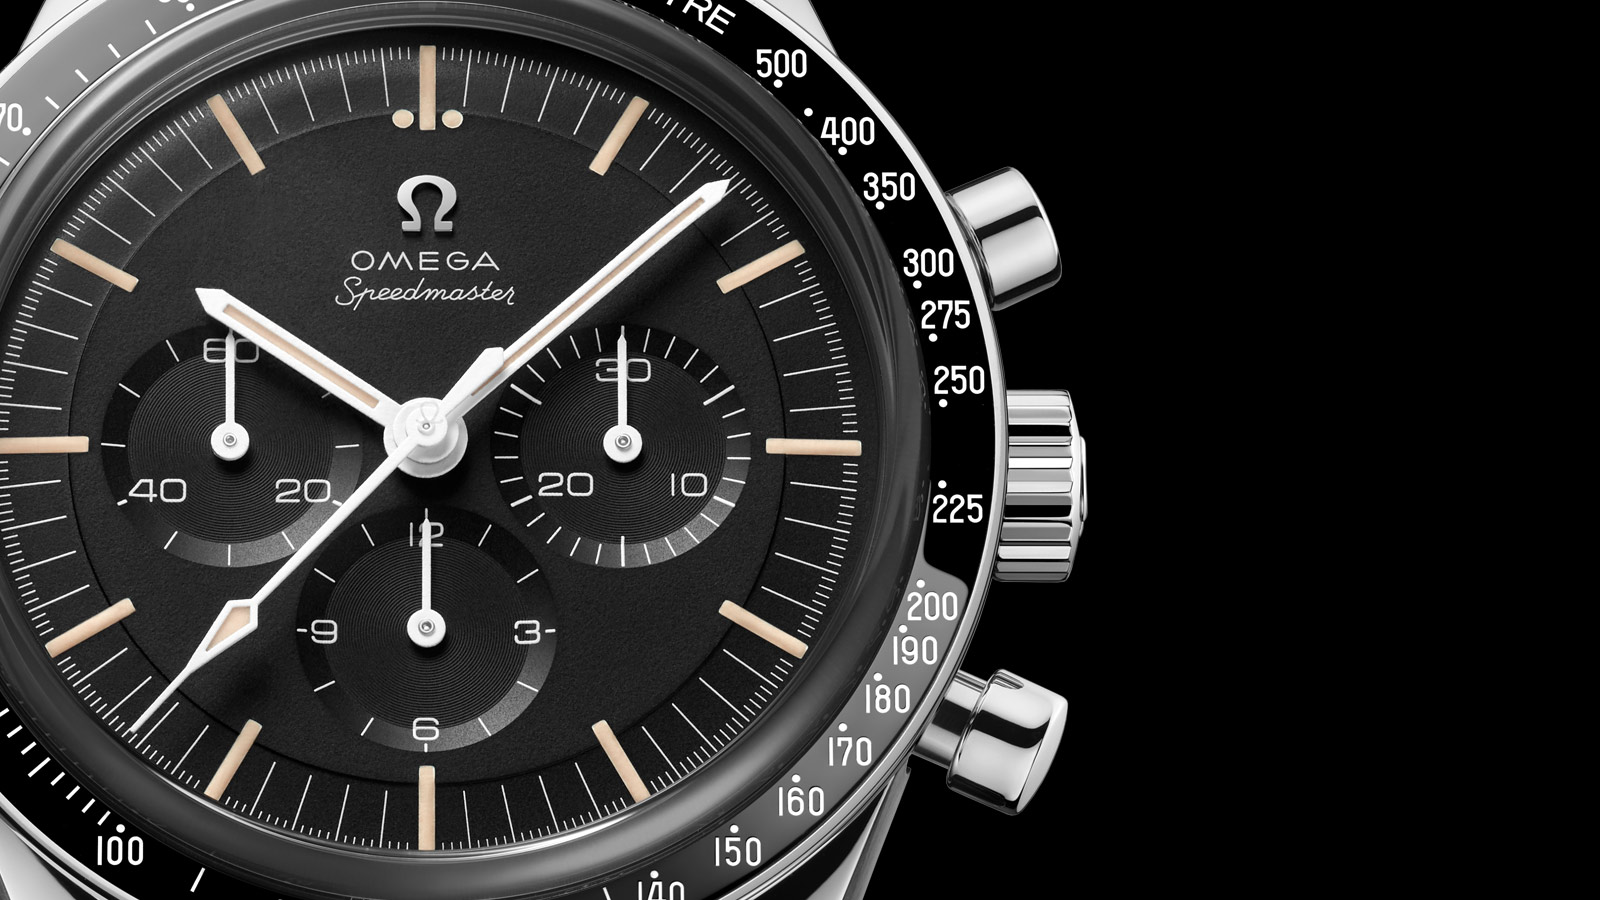 Speedmaster Moonwatch Moonwatch Chronograph 39.7 mm Watch - 311.30.40.30.01.001